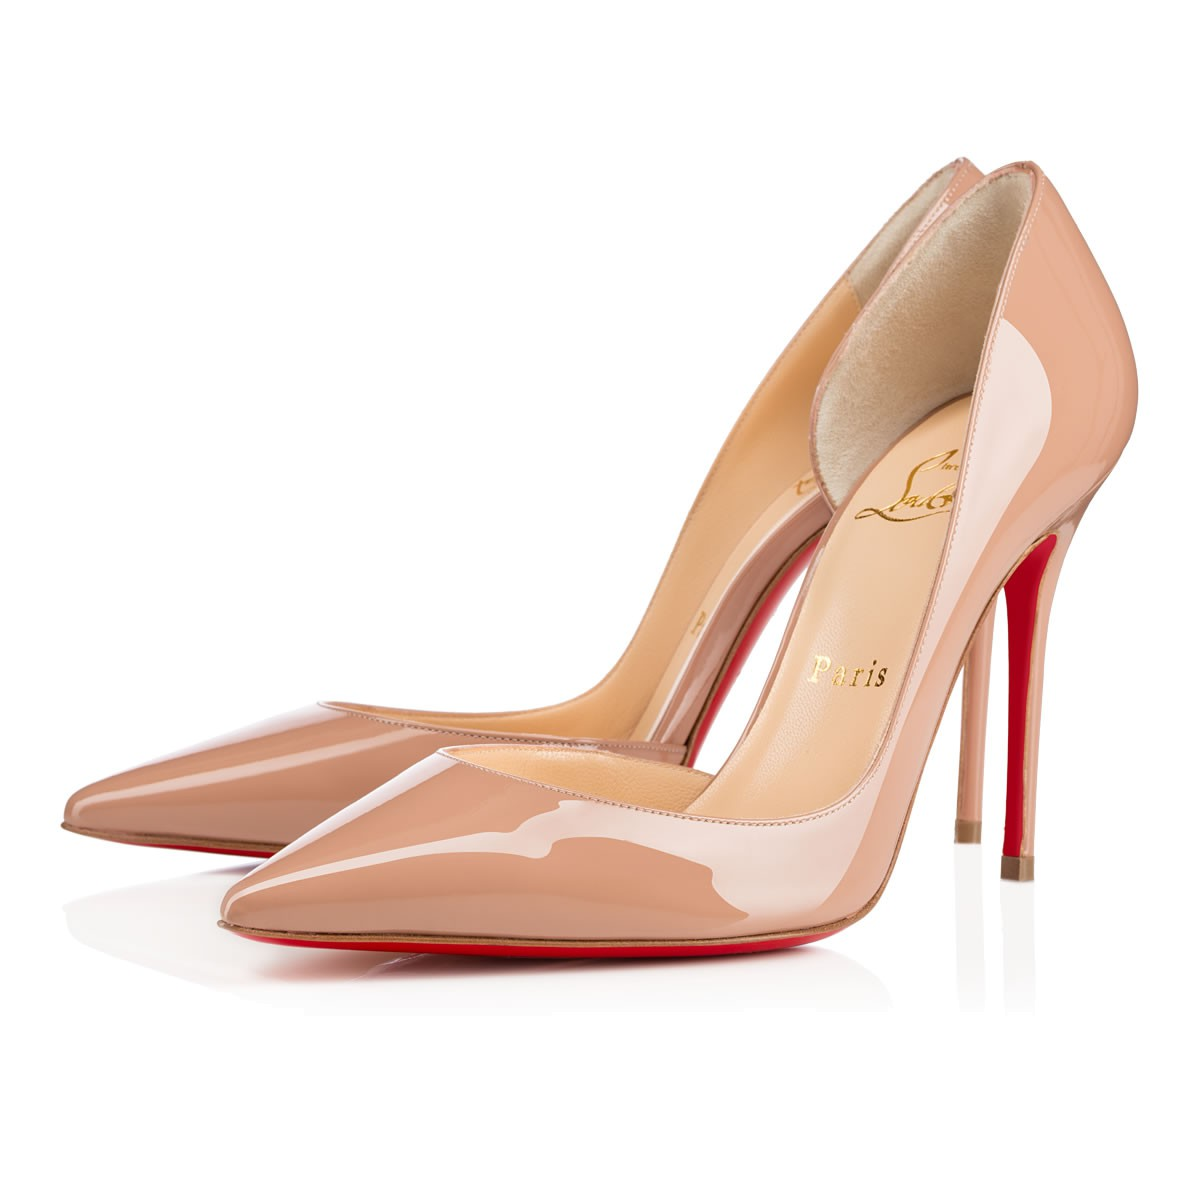 7c74b2b9b569 Iriza 100 Nude Patent Leather - Women Shoes - Christian Louboutin